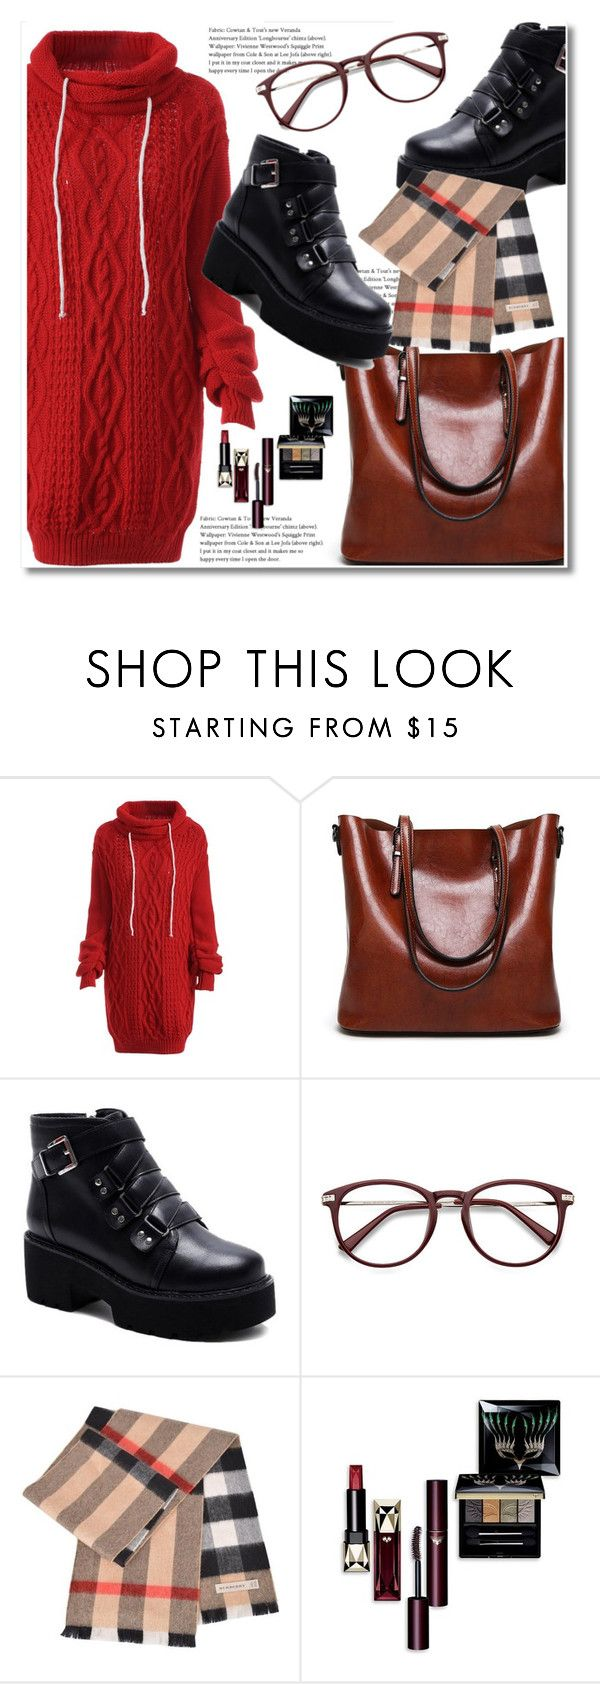 """Last minute trip"" by aida-nurkovic ❤ liked on Polyvore featuring Burberry, Clé de Peau Beauté, Elegant, women and rosegal"